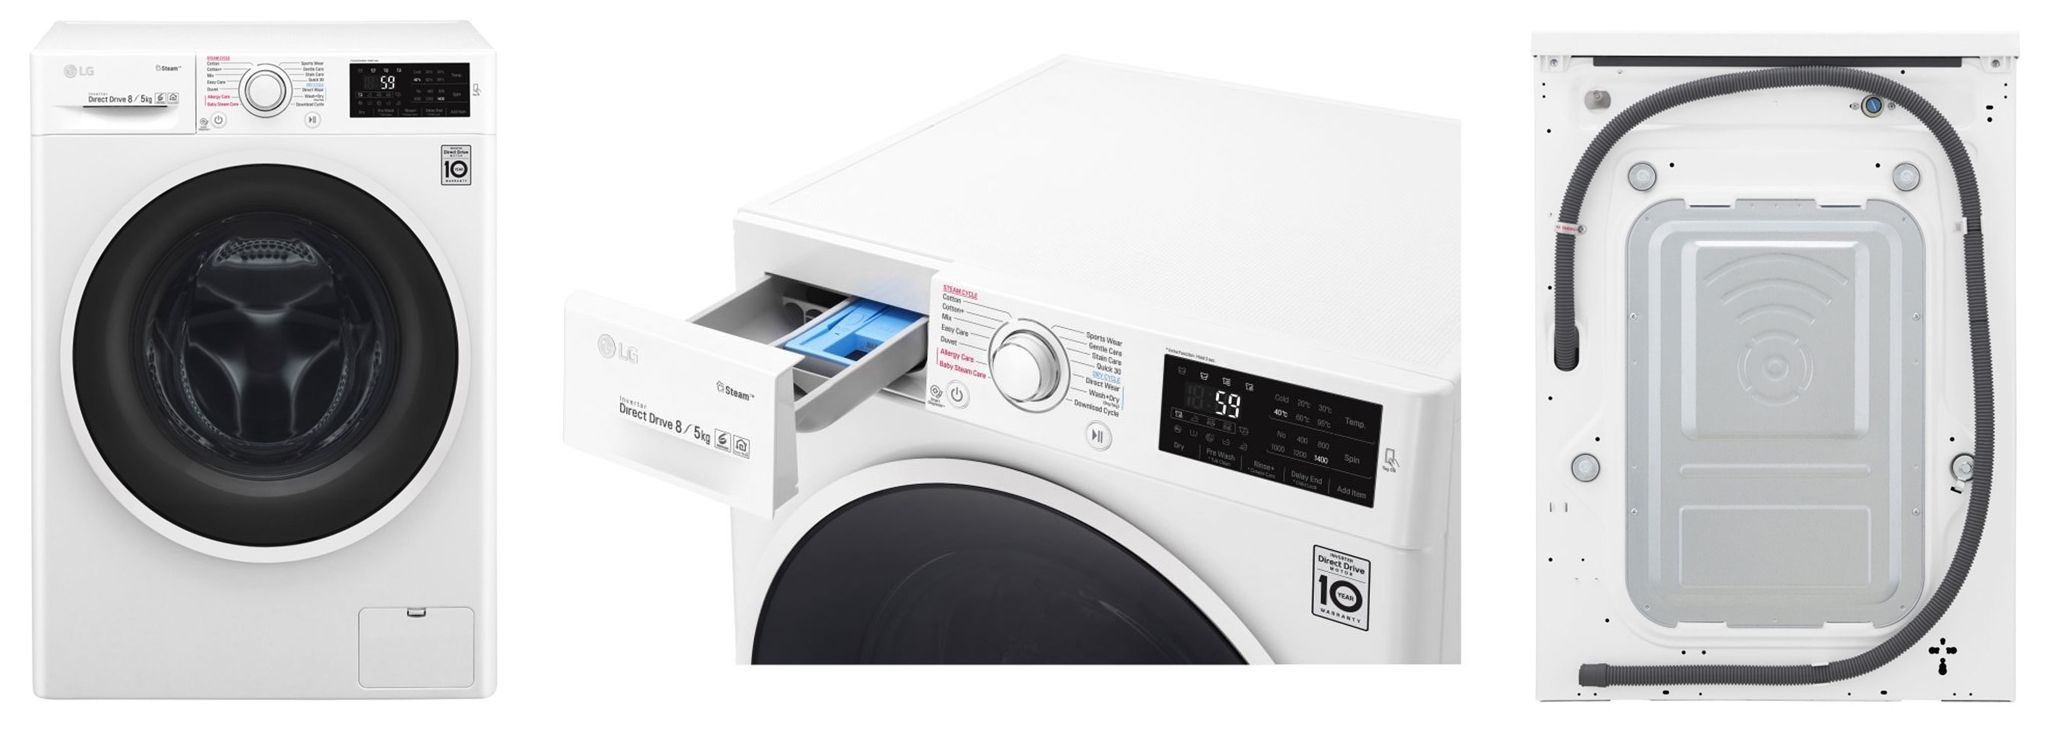 2 Best Washing Machine Under 50000 Rupees In India Market Gadgets Shiksha Washer Dryer Washer Dryer